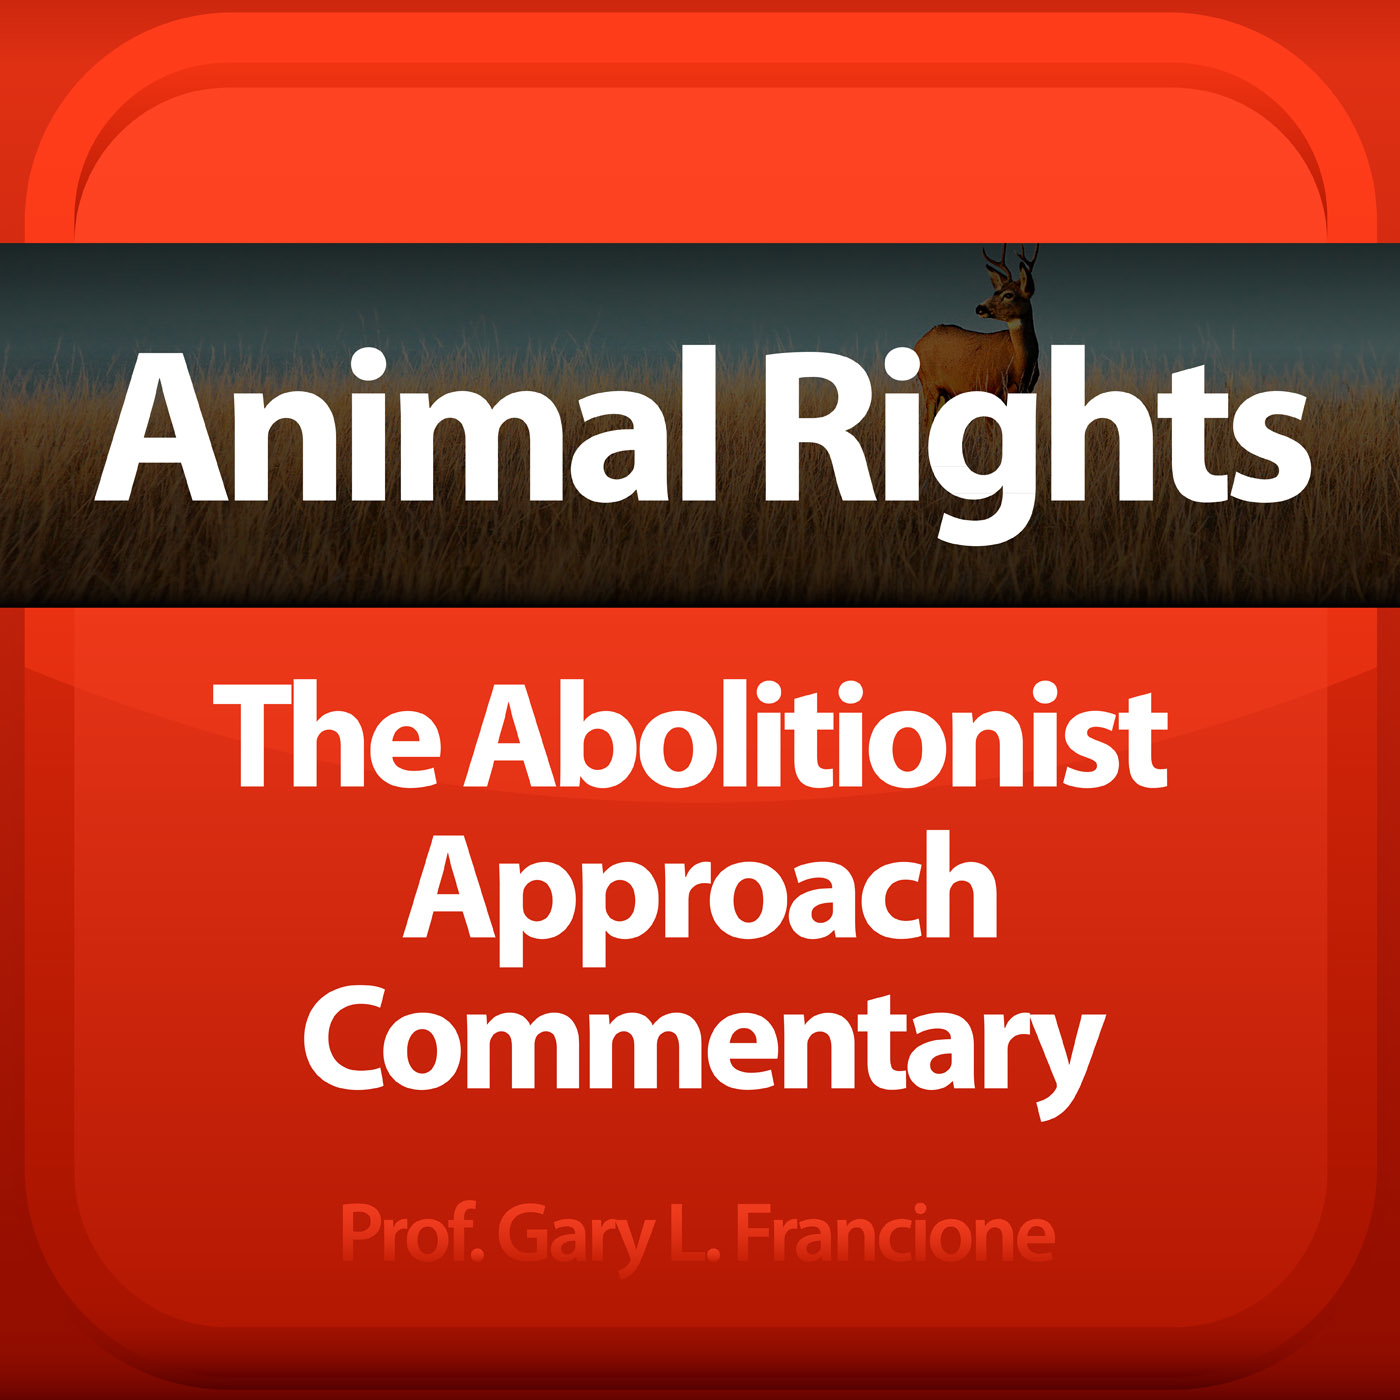 Animal Rights: The Abolitionist Approach Commentary